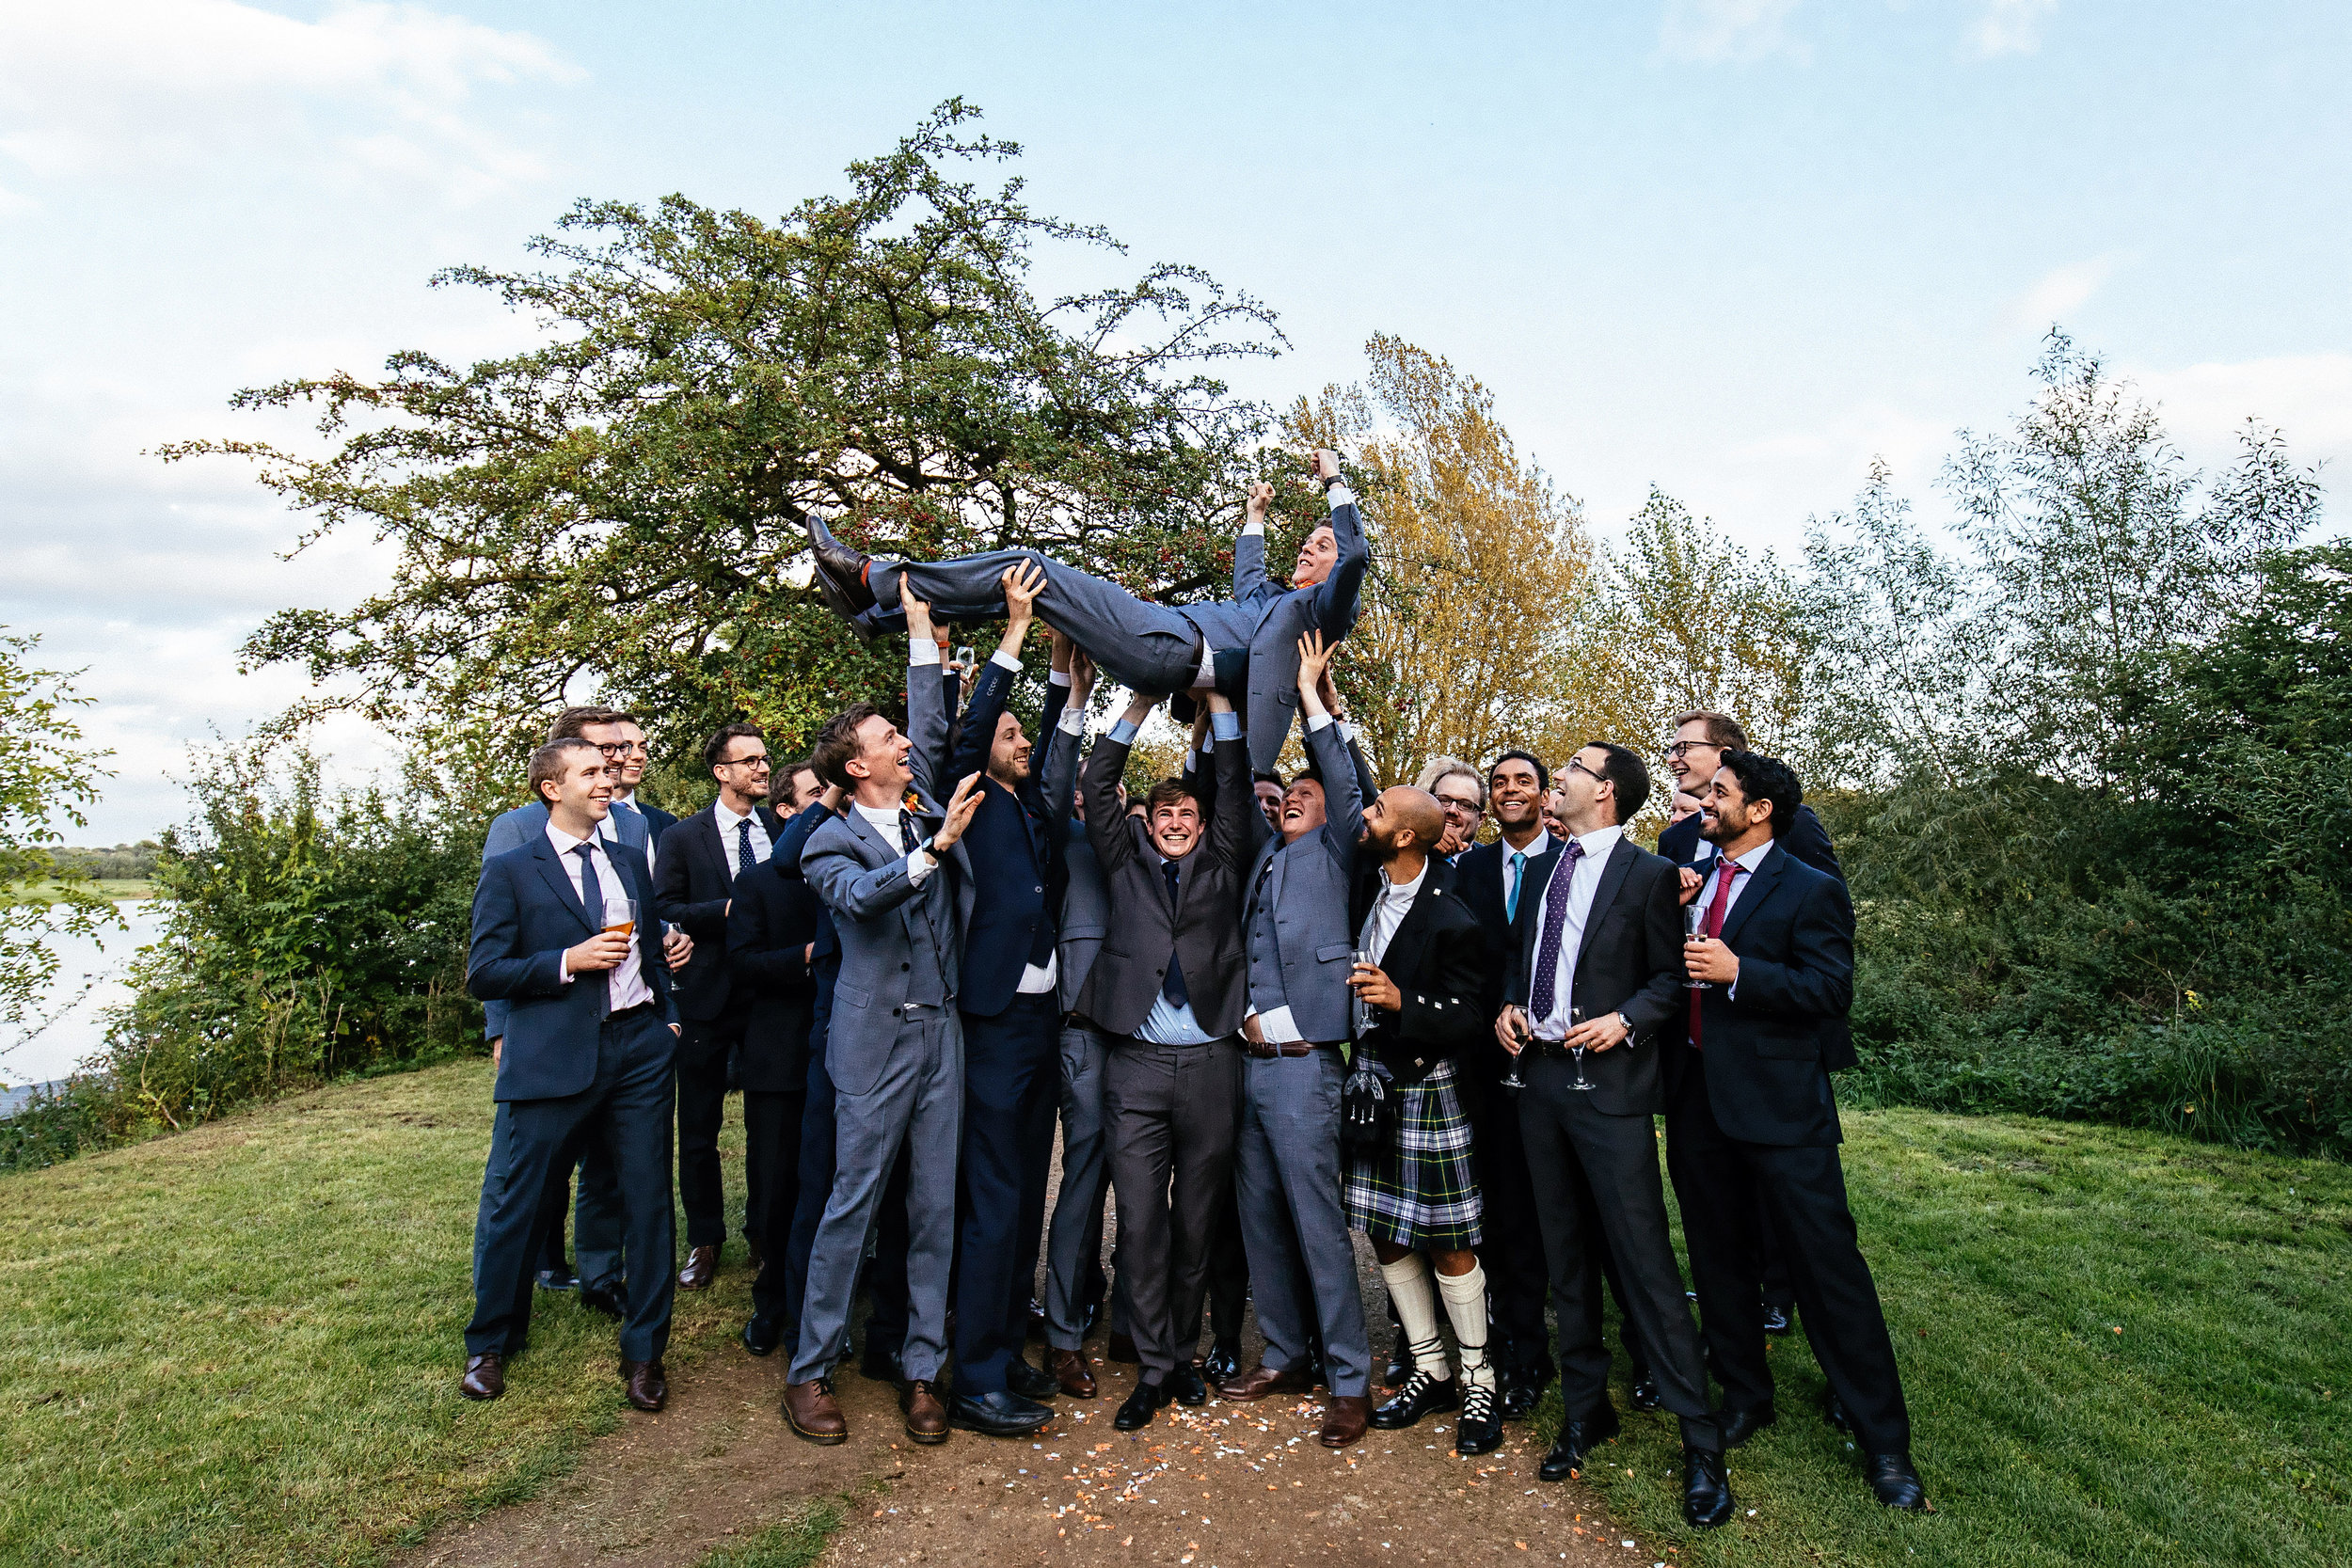 Trinity College Oxford University Wedding Photographer 0107.jpg